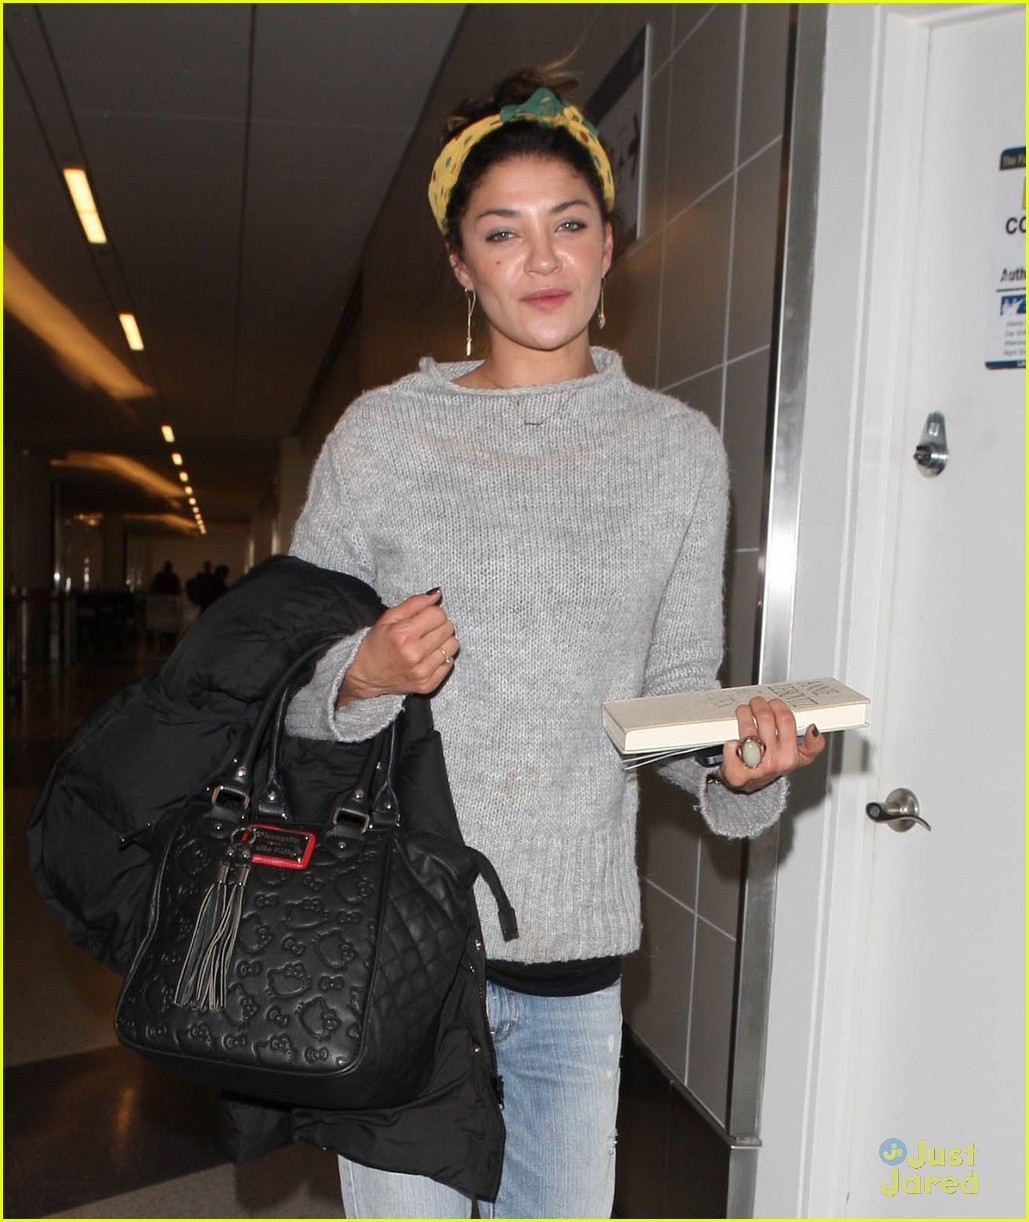 jessica szohr dating now Hunter pence is just absolutely killing life right now aaron rodgers reportedly dating actress jessica szohr the list of steve's smokin' hot sports girlfriends.